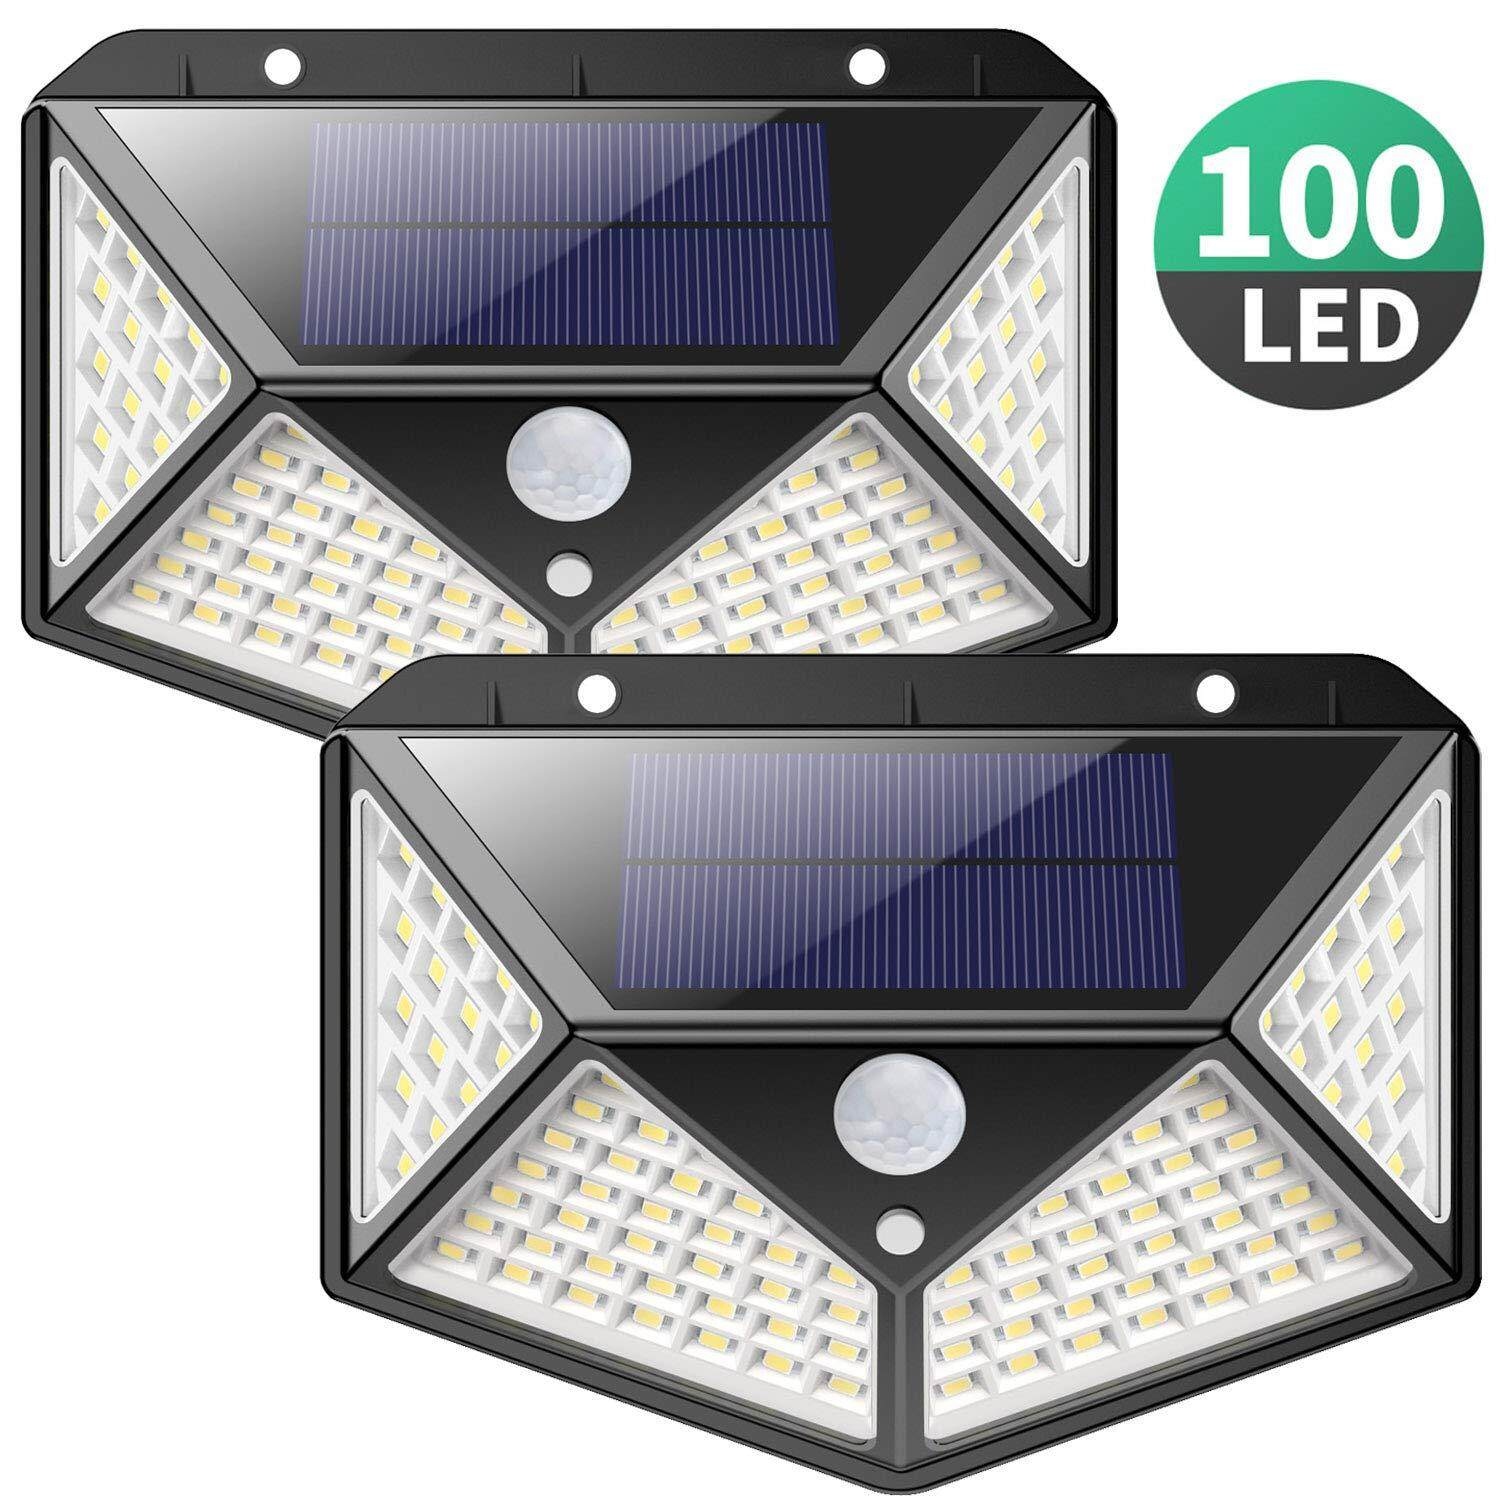 Solar Lights Outdoor,【270º Four-Angle Lighting-2 Pack】iPosible 100 LED Solar Security Light with Motion Sensor Solar Waterproof Wall Light with 3 Modes for Garden,Outside